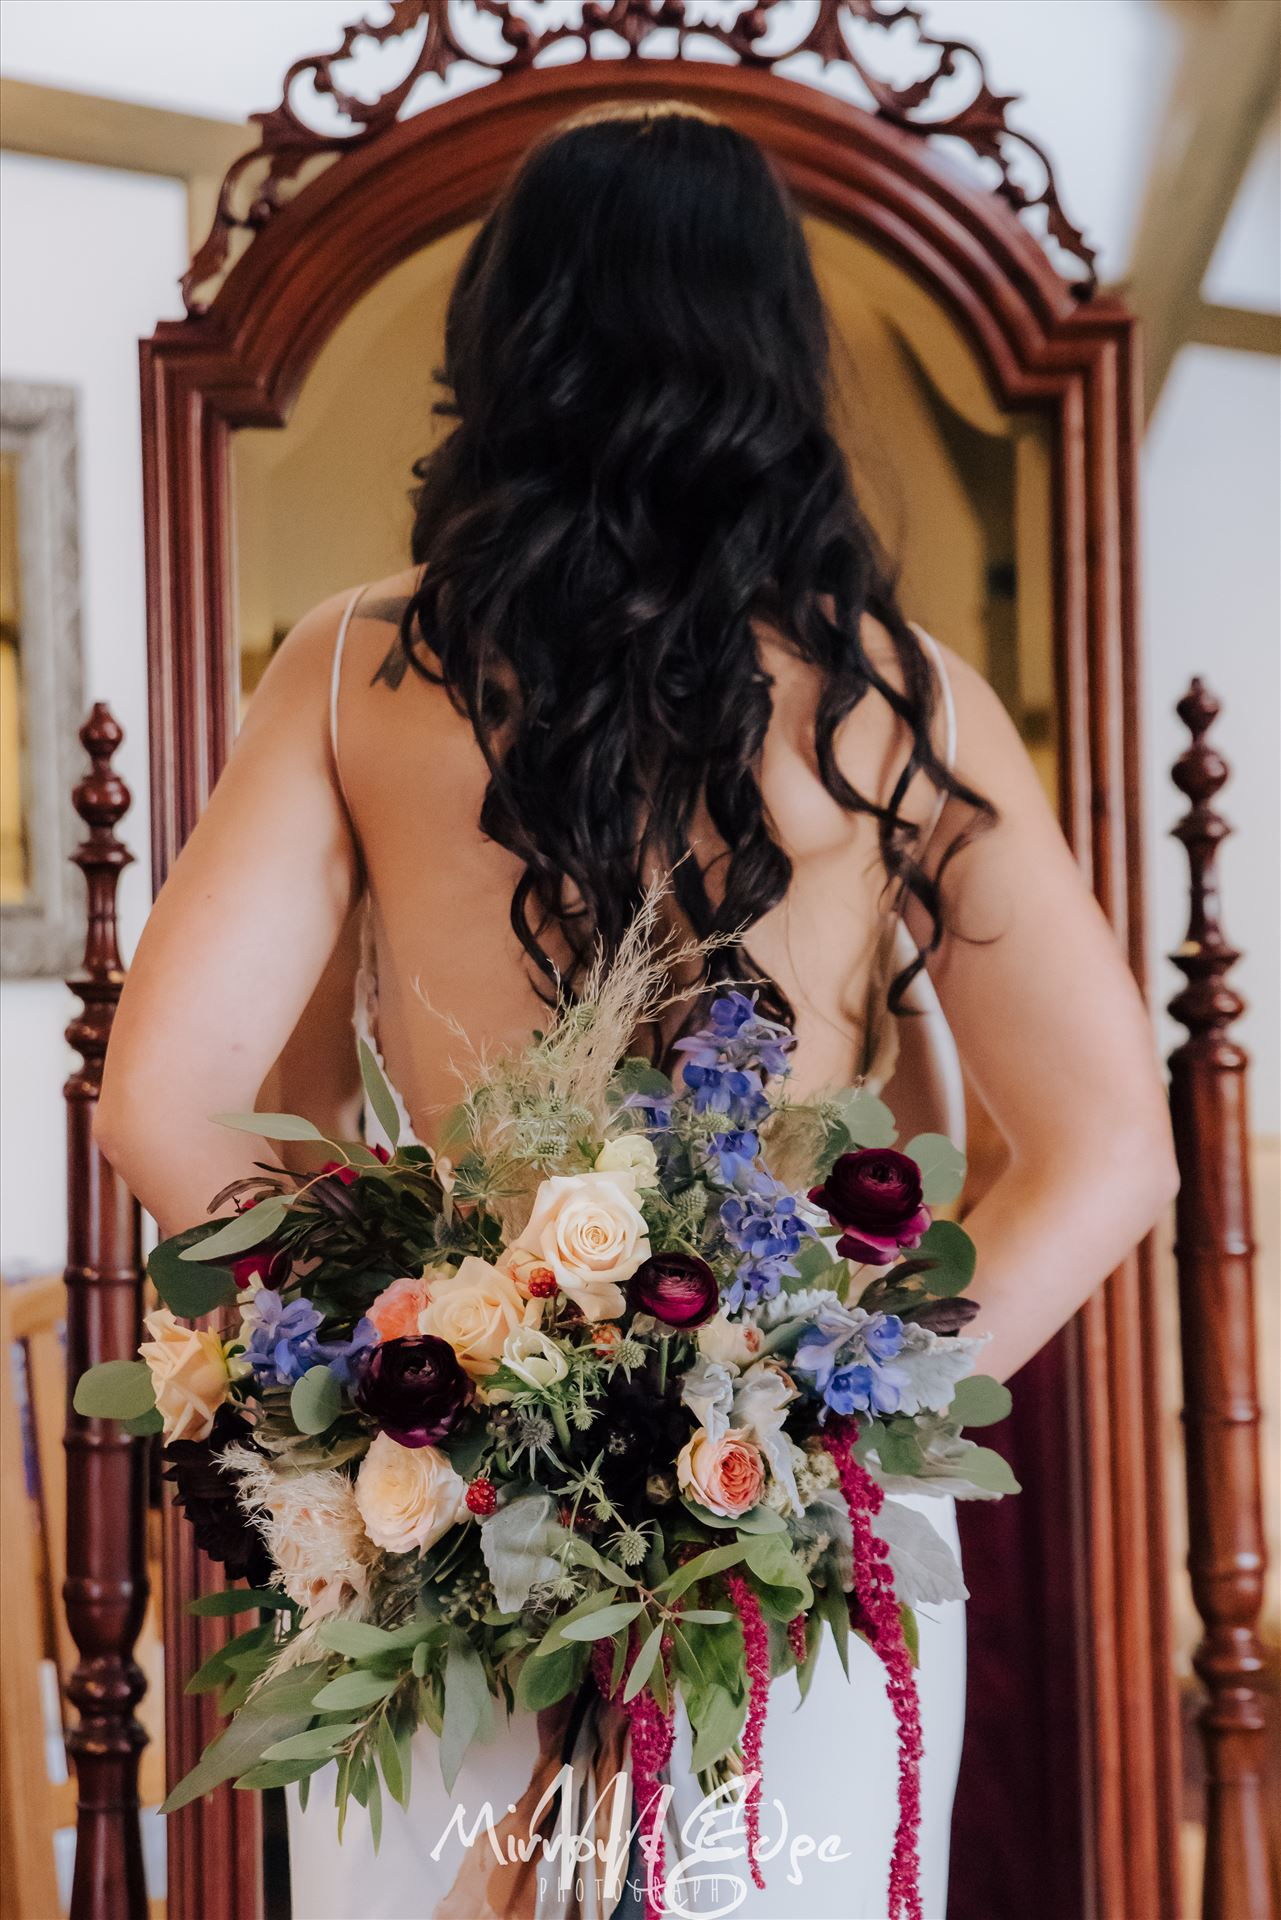 Arroyo Grande Wedding Bride With Flowers - Cypress Ridge Pavilion Wedding at Cypress Ridge Golf Course in Arroyo Grande California Wedding Photography by San Luis Obispo Wedding Photographer. Bride with flowers. by Sarah Williams